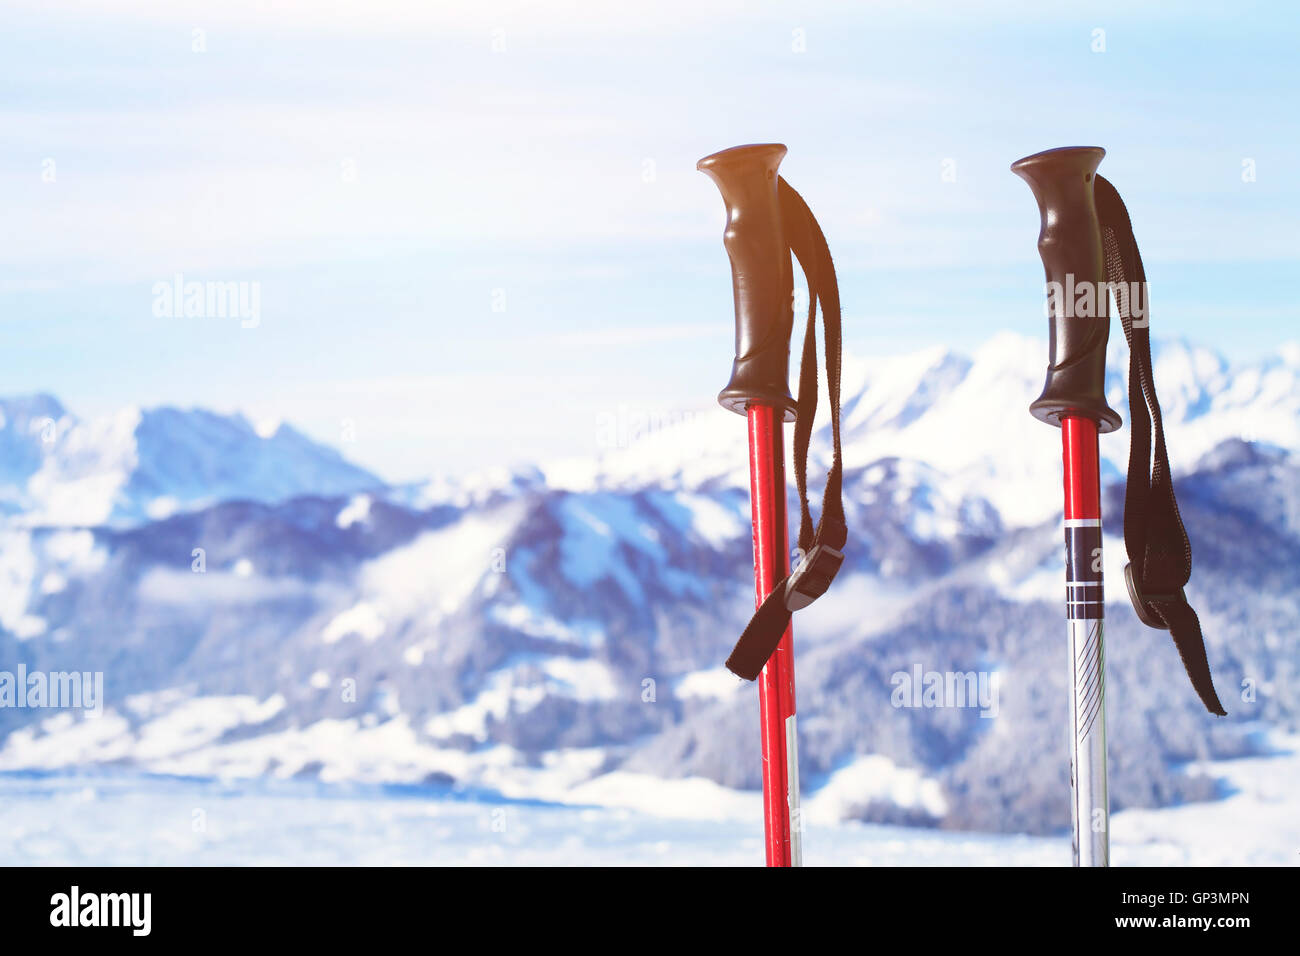 skiing in Alps, close up of two ski poles on mountains background - Stock Image